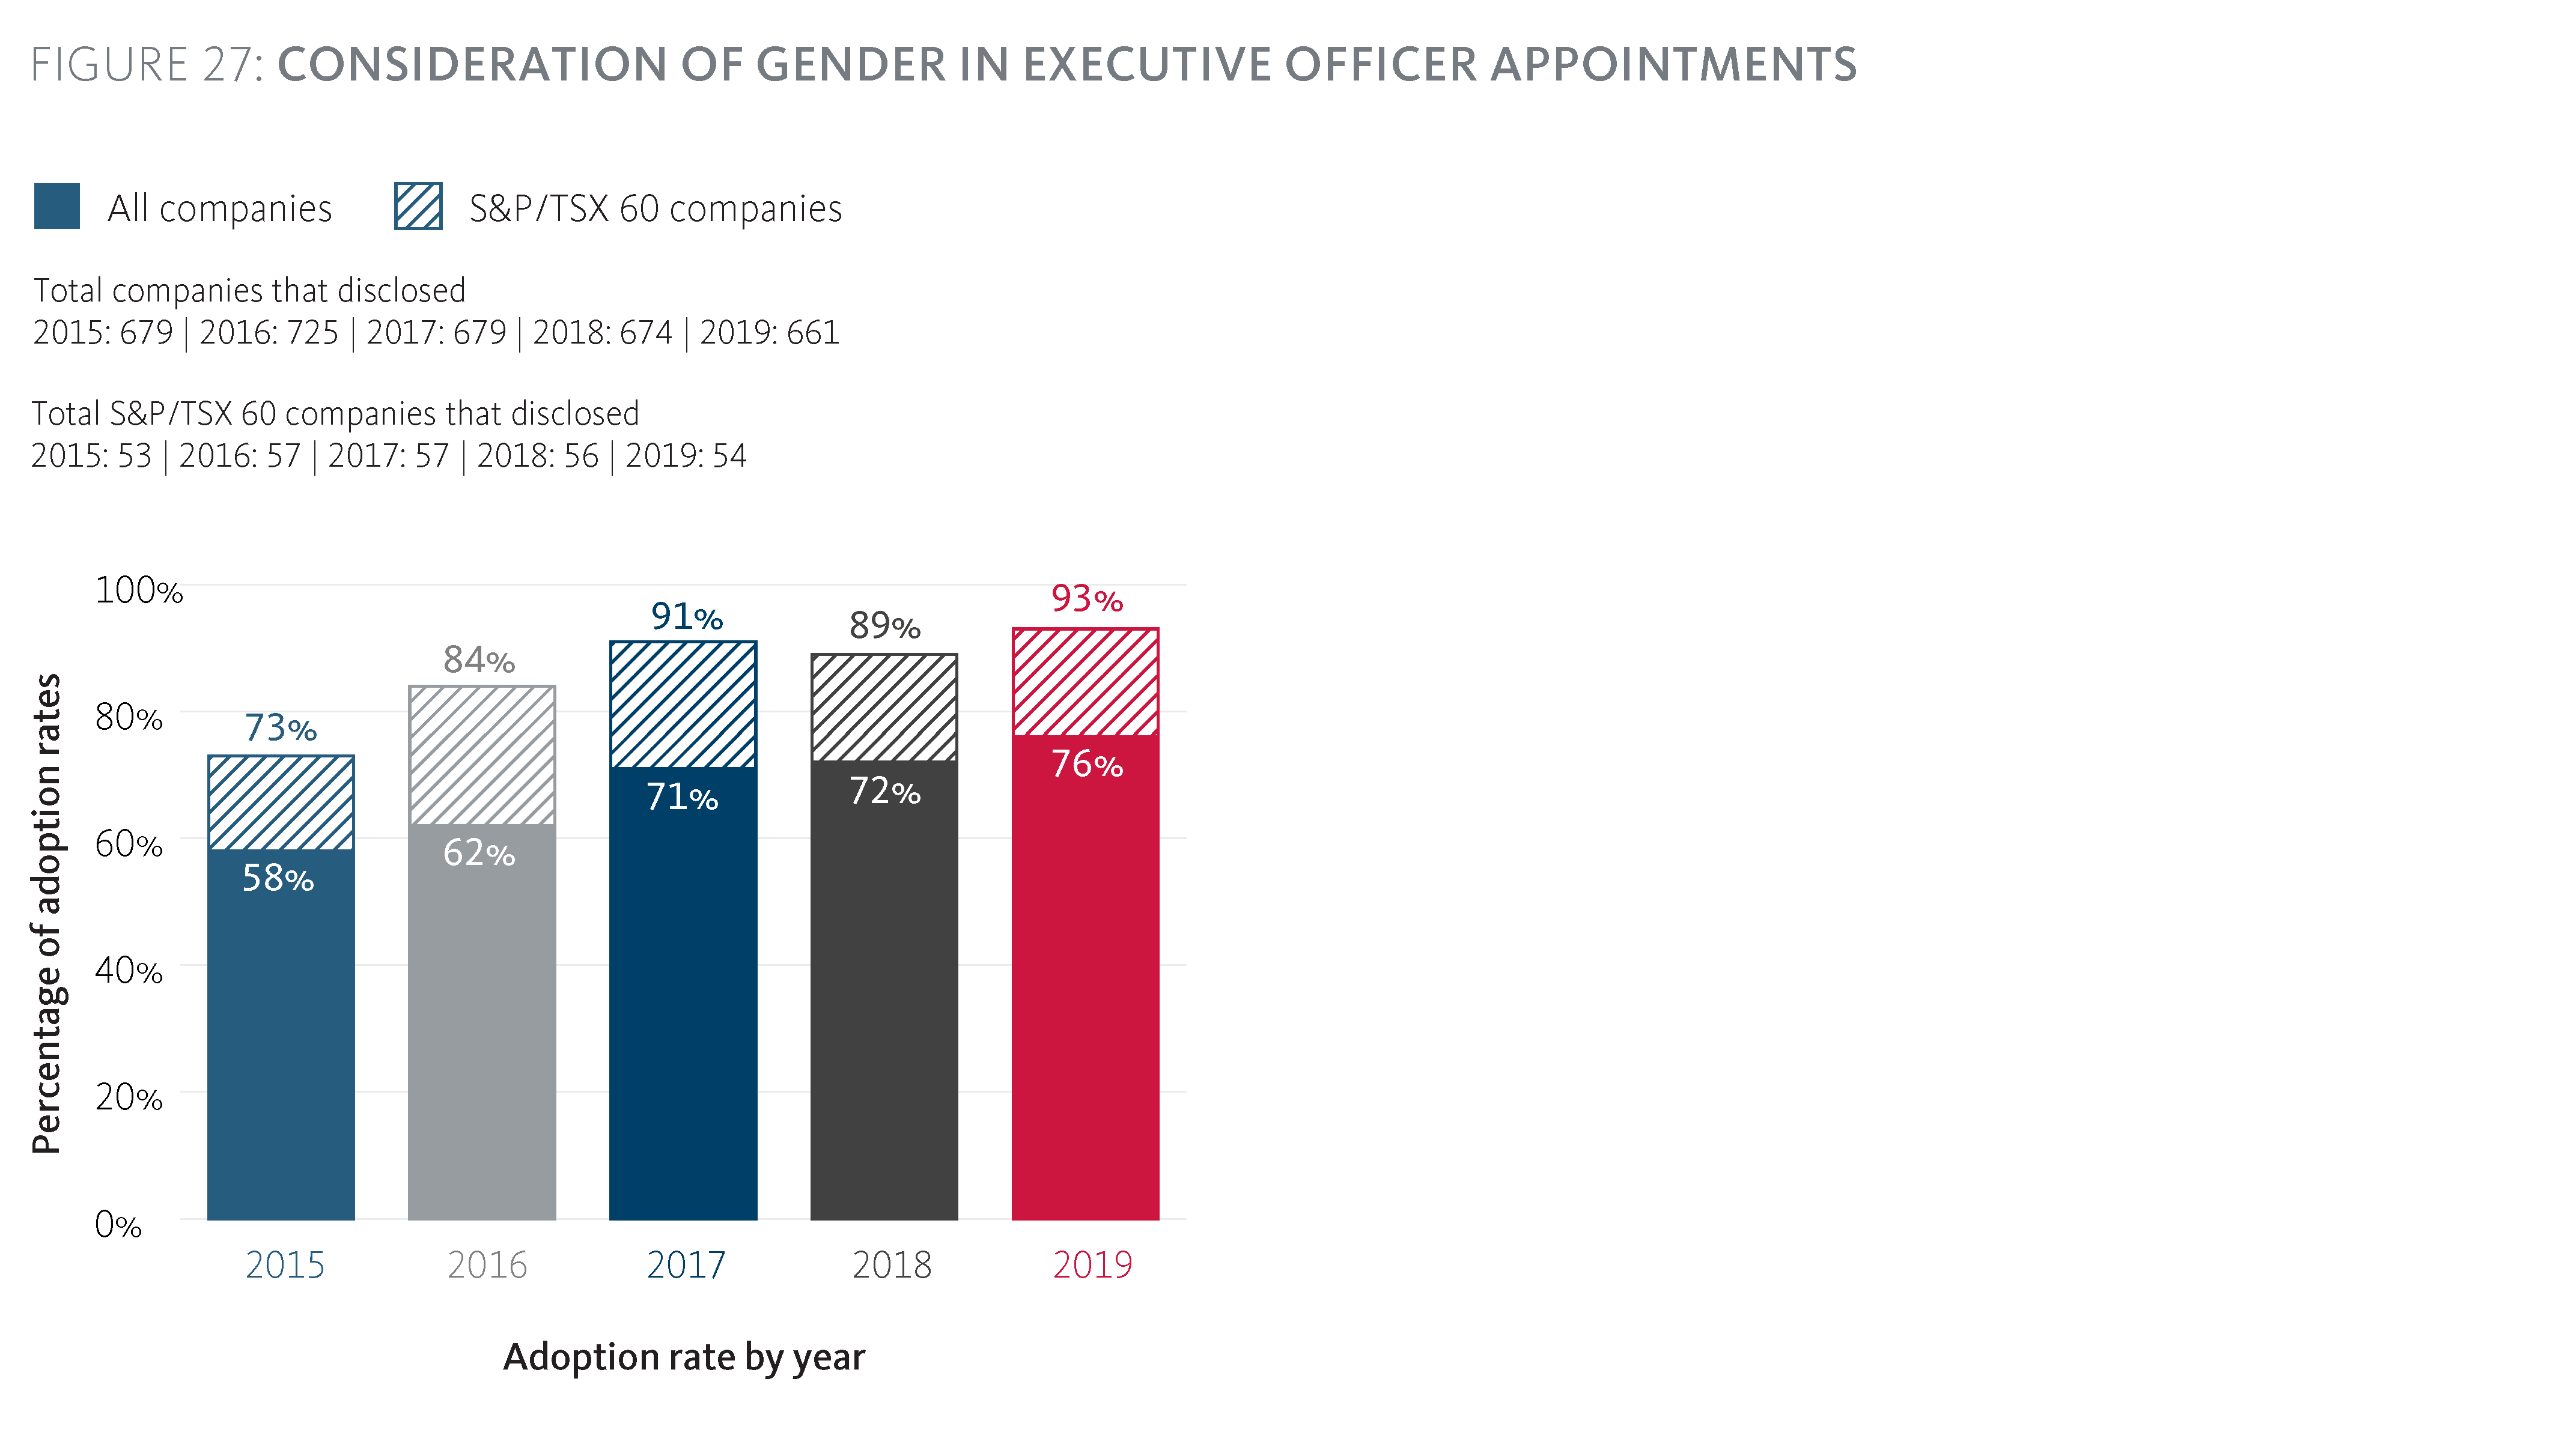 Consideration of gender in Executive Officer appointments